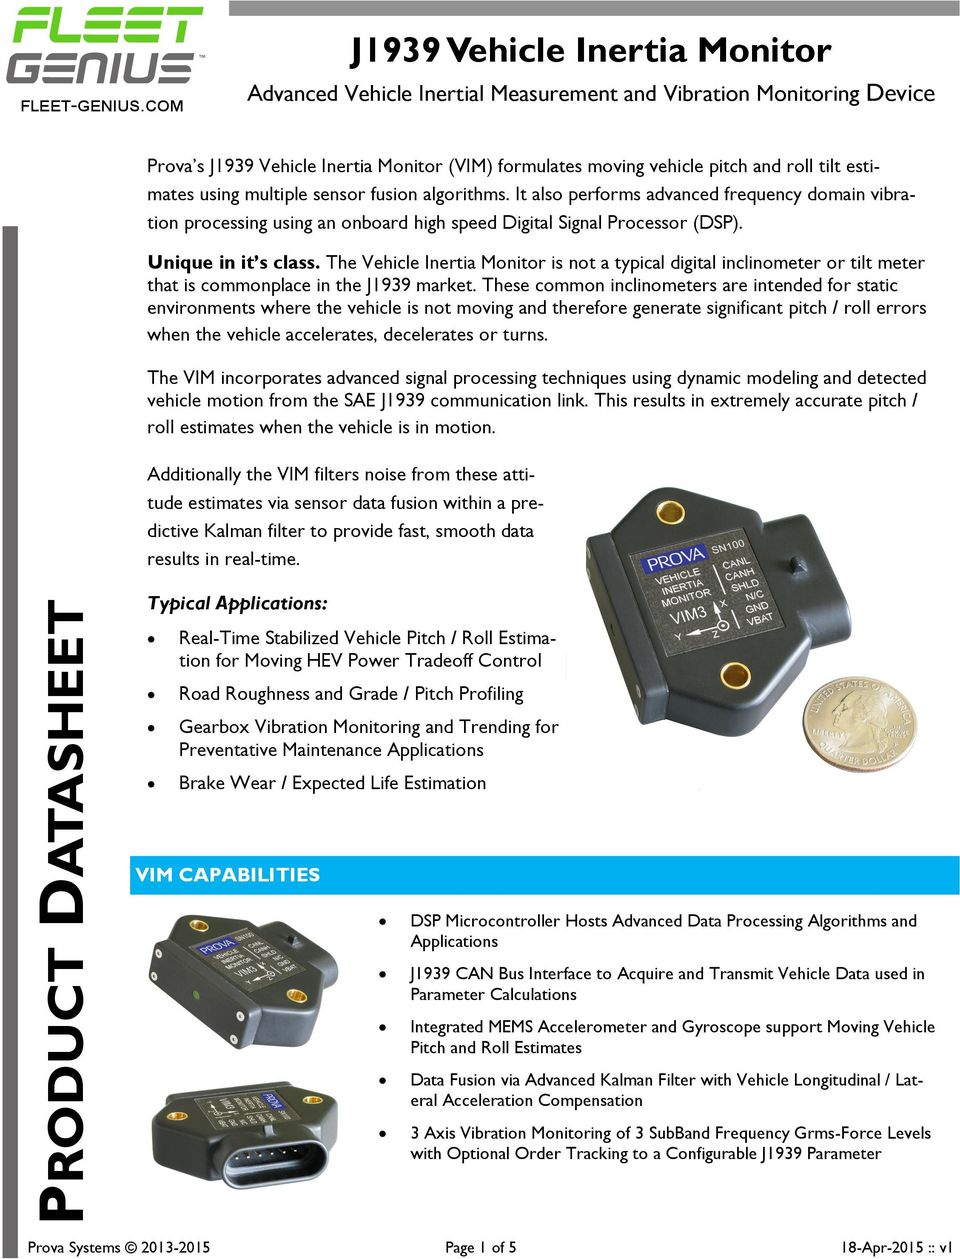 Product Datasheet J1939 Vehicle Inertia Monitor Advanced Mems Accelerometer And Gyroscope To Improve Car Gps Navigation System Performance Estimates Using Multiple Sensor Fusion Algorithms It Also Performs Frequency Domain Vibration Processing